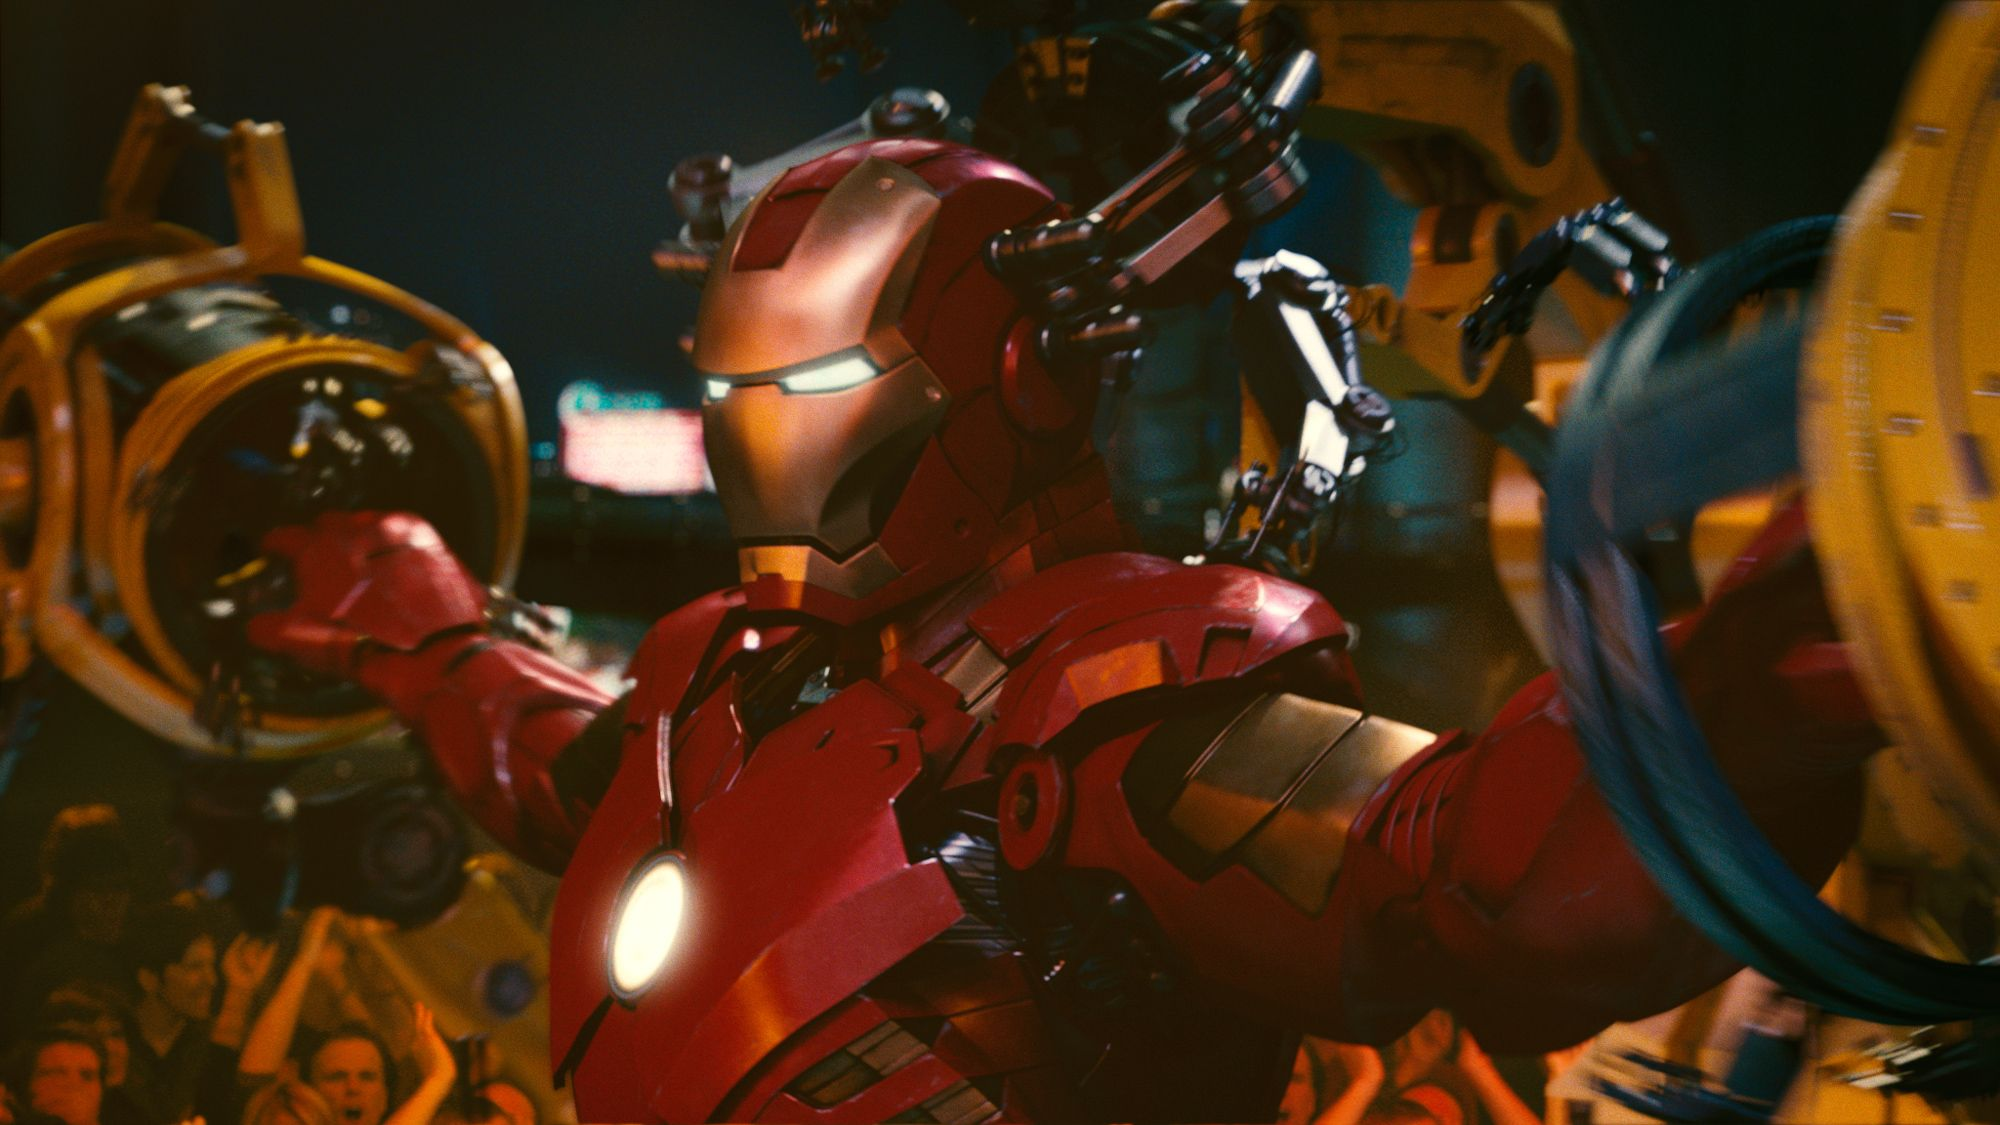 10 New IRON MAN 2 Images in High Resolution | Collider ...